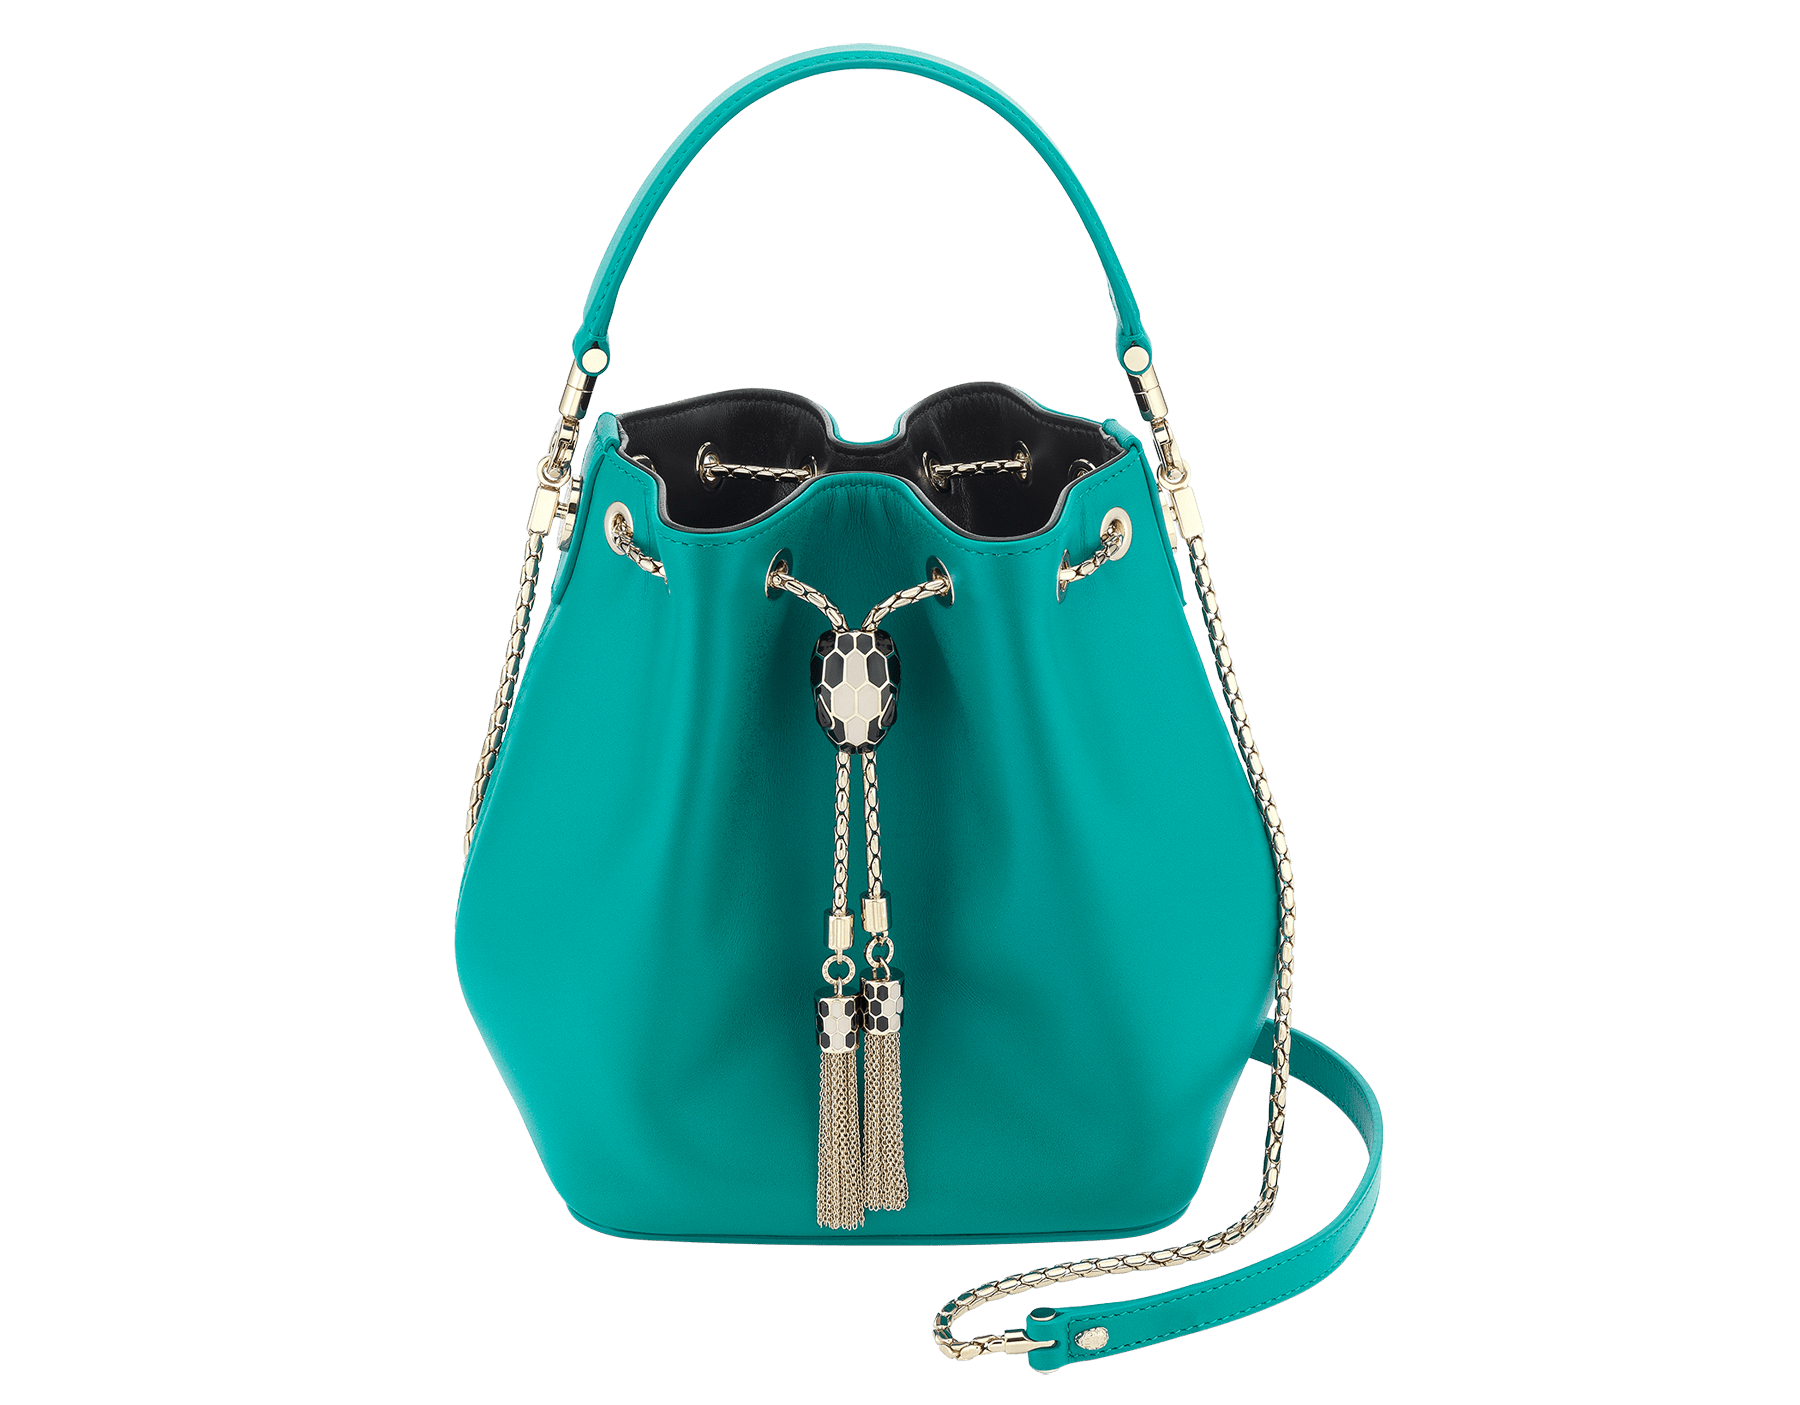 Serpenti Forever bucket bag in tropical turquoise smooth calf leather and black nappa inner lining. Snakehead closure in light gold plated brass decorated with black and white enamel, and black onyx eyes. 287981 image 1